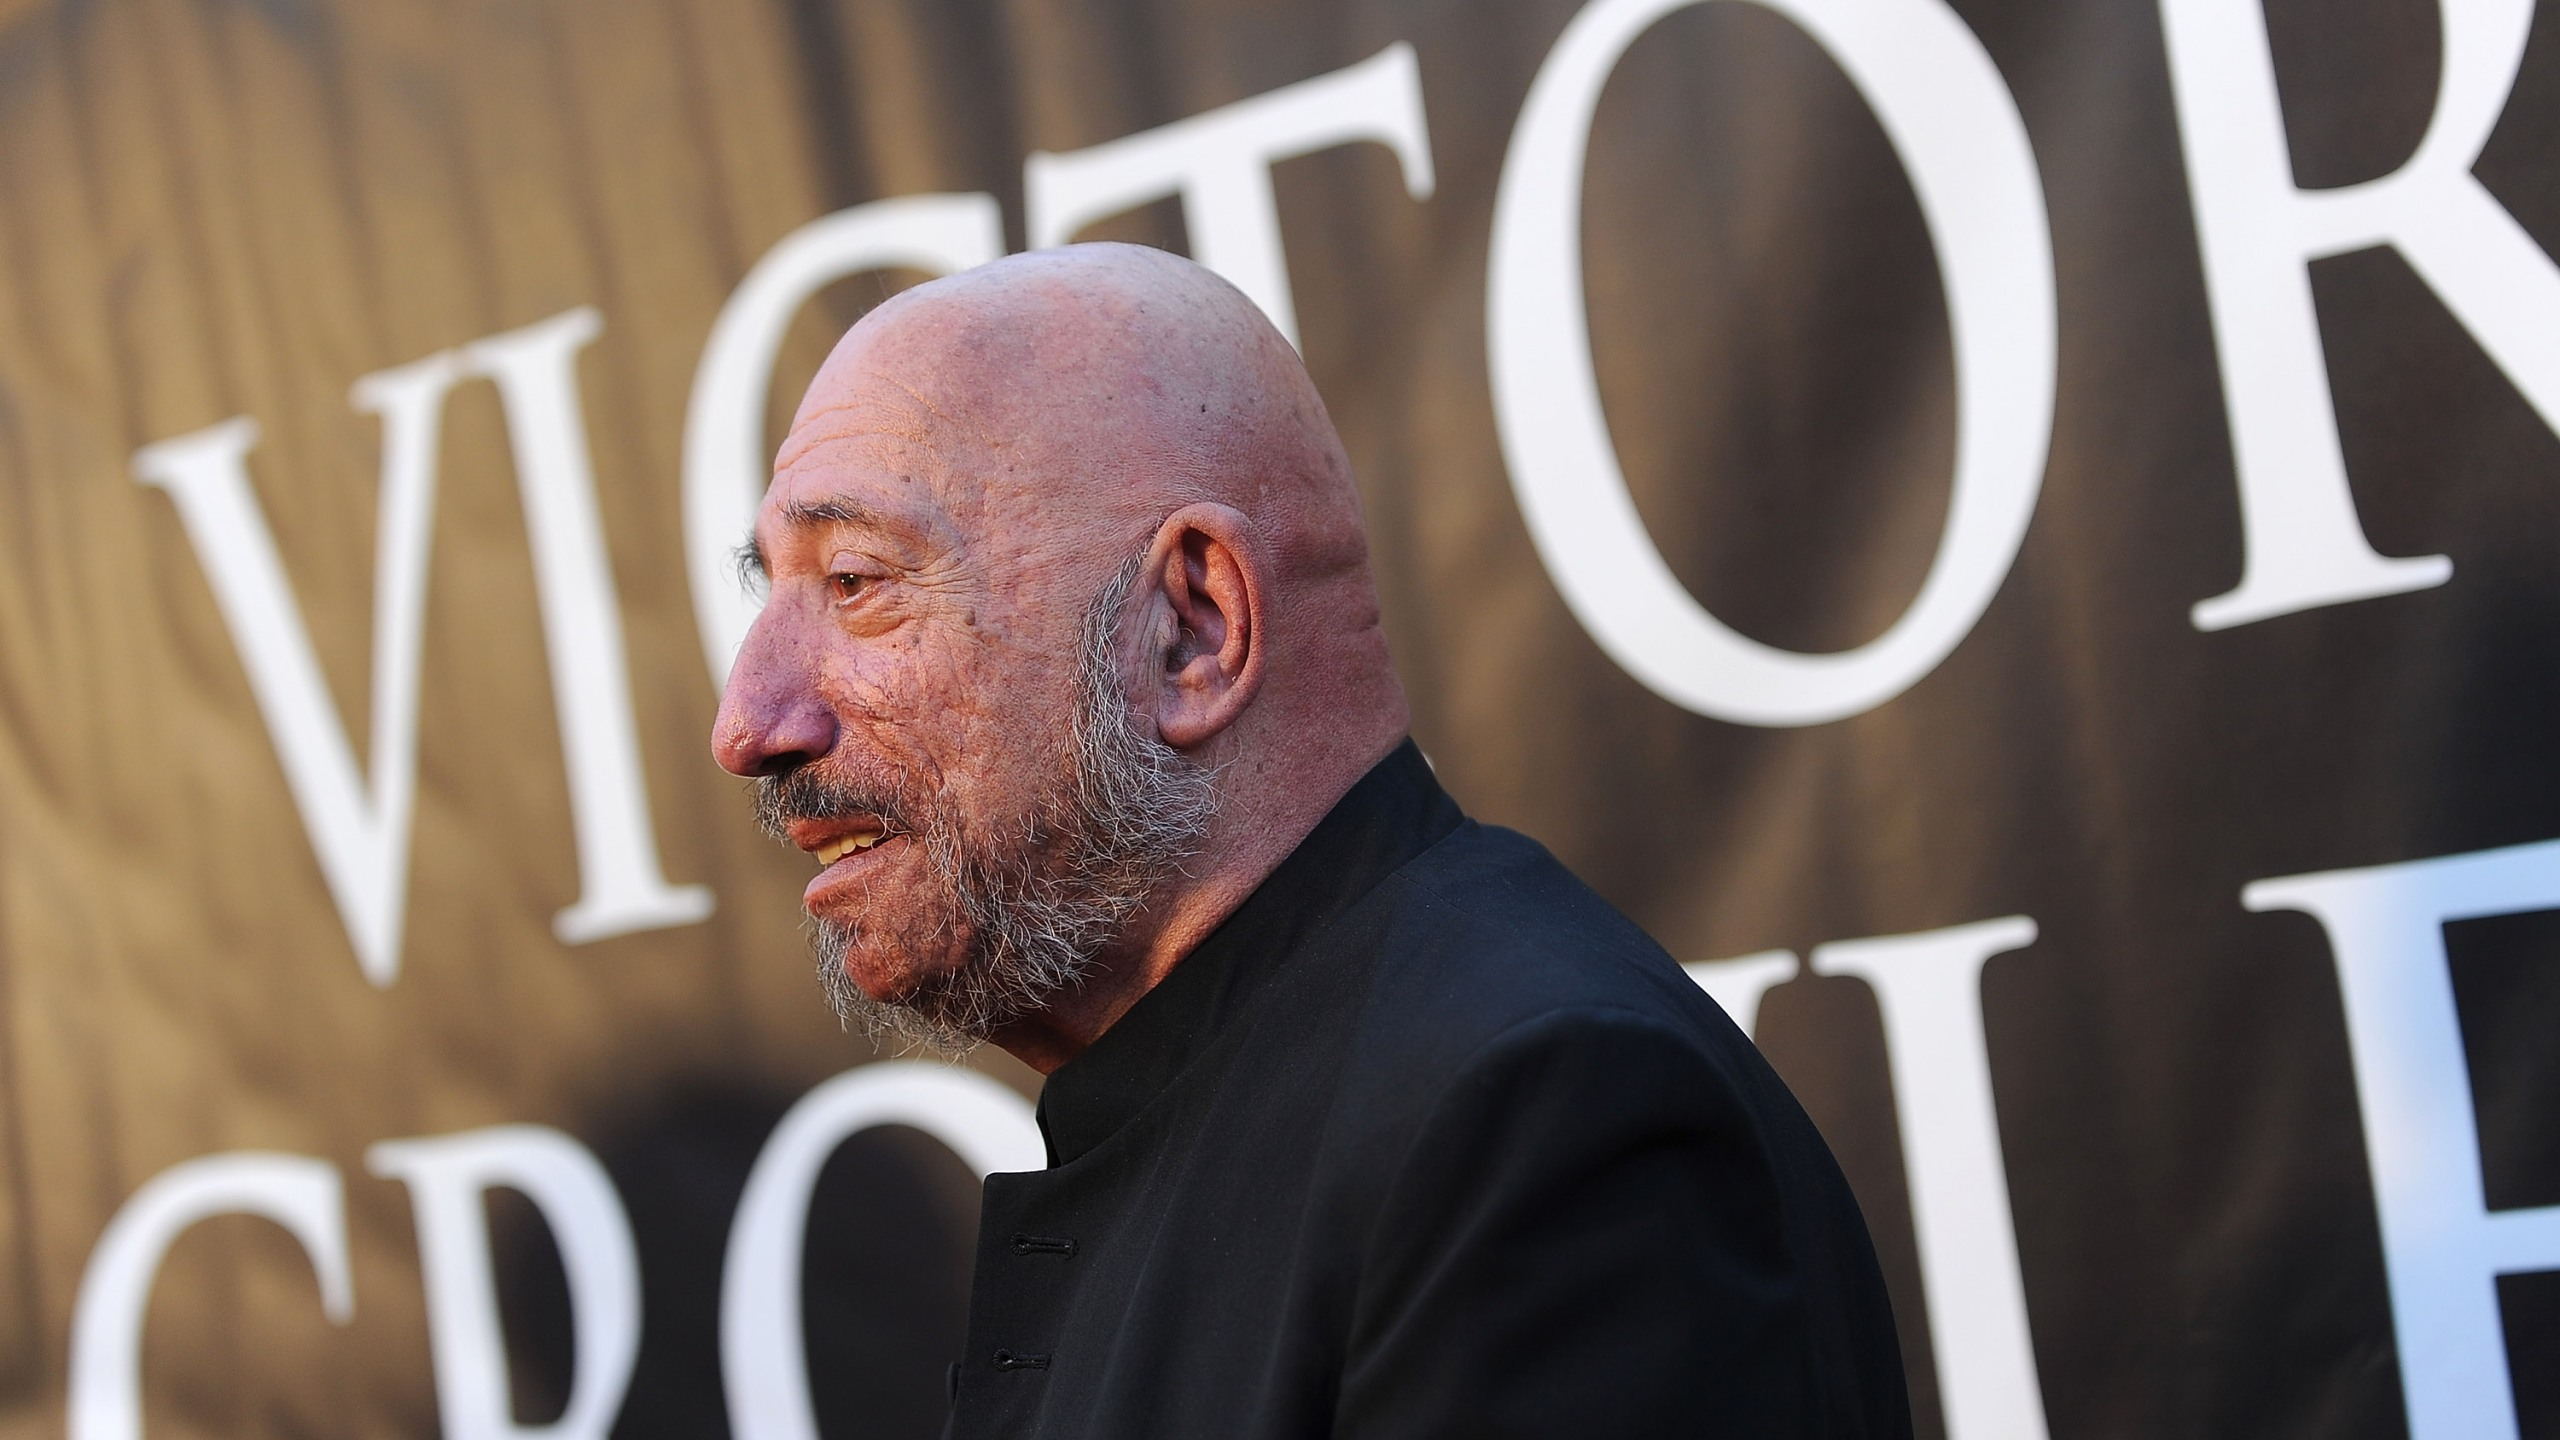 Sid Haig Actor In House Of 1000 Corpses Dies At Age 80 Fox 4